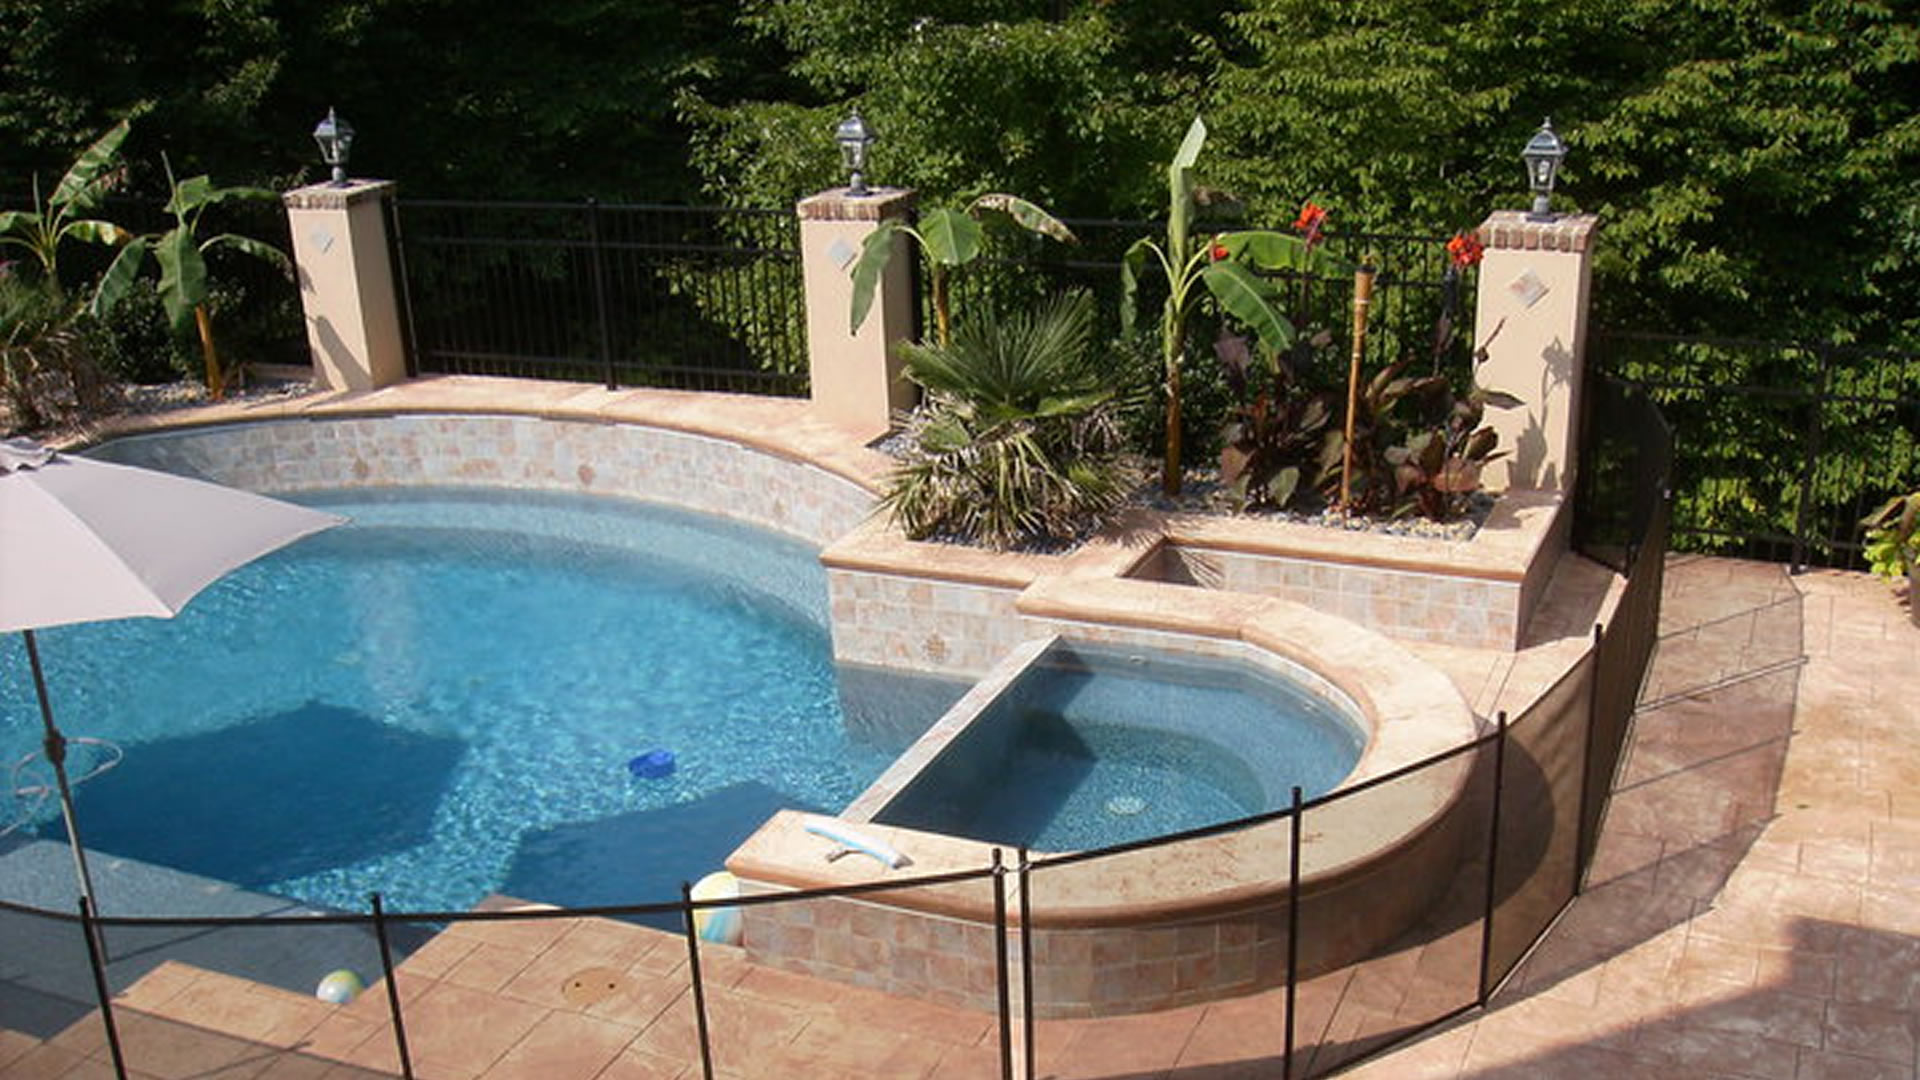 Pool Barrier of Arizona - Iron Fences, Mesh Fences, Pool Covers